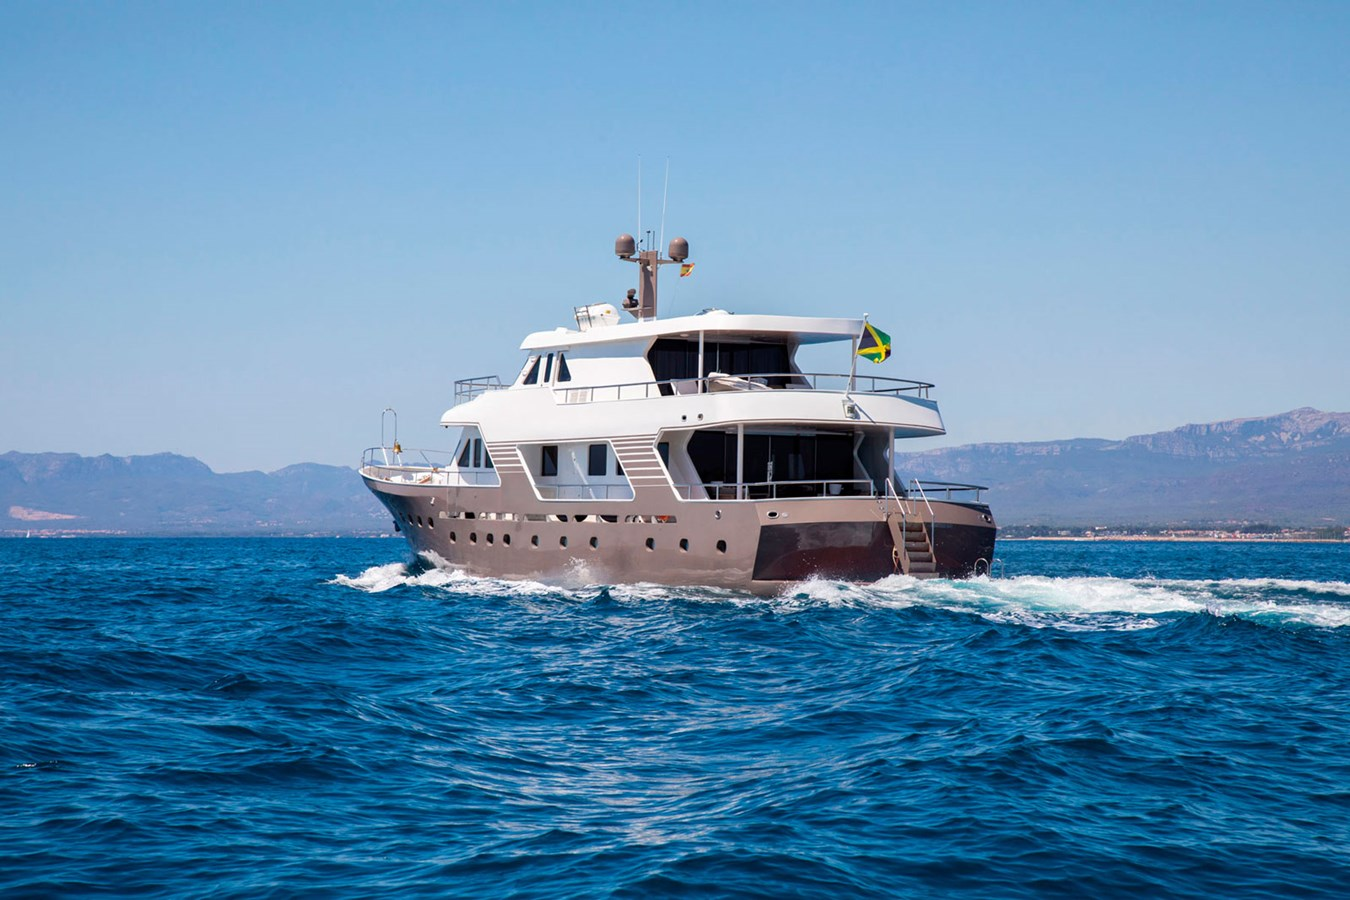 Witsen-and-vis-33m-Yacht-Aft-View-Running 1971 Witsen & Vis  Motor Yacht 2680998